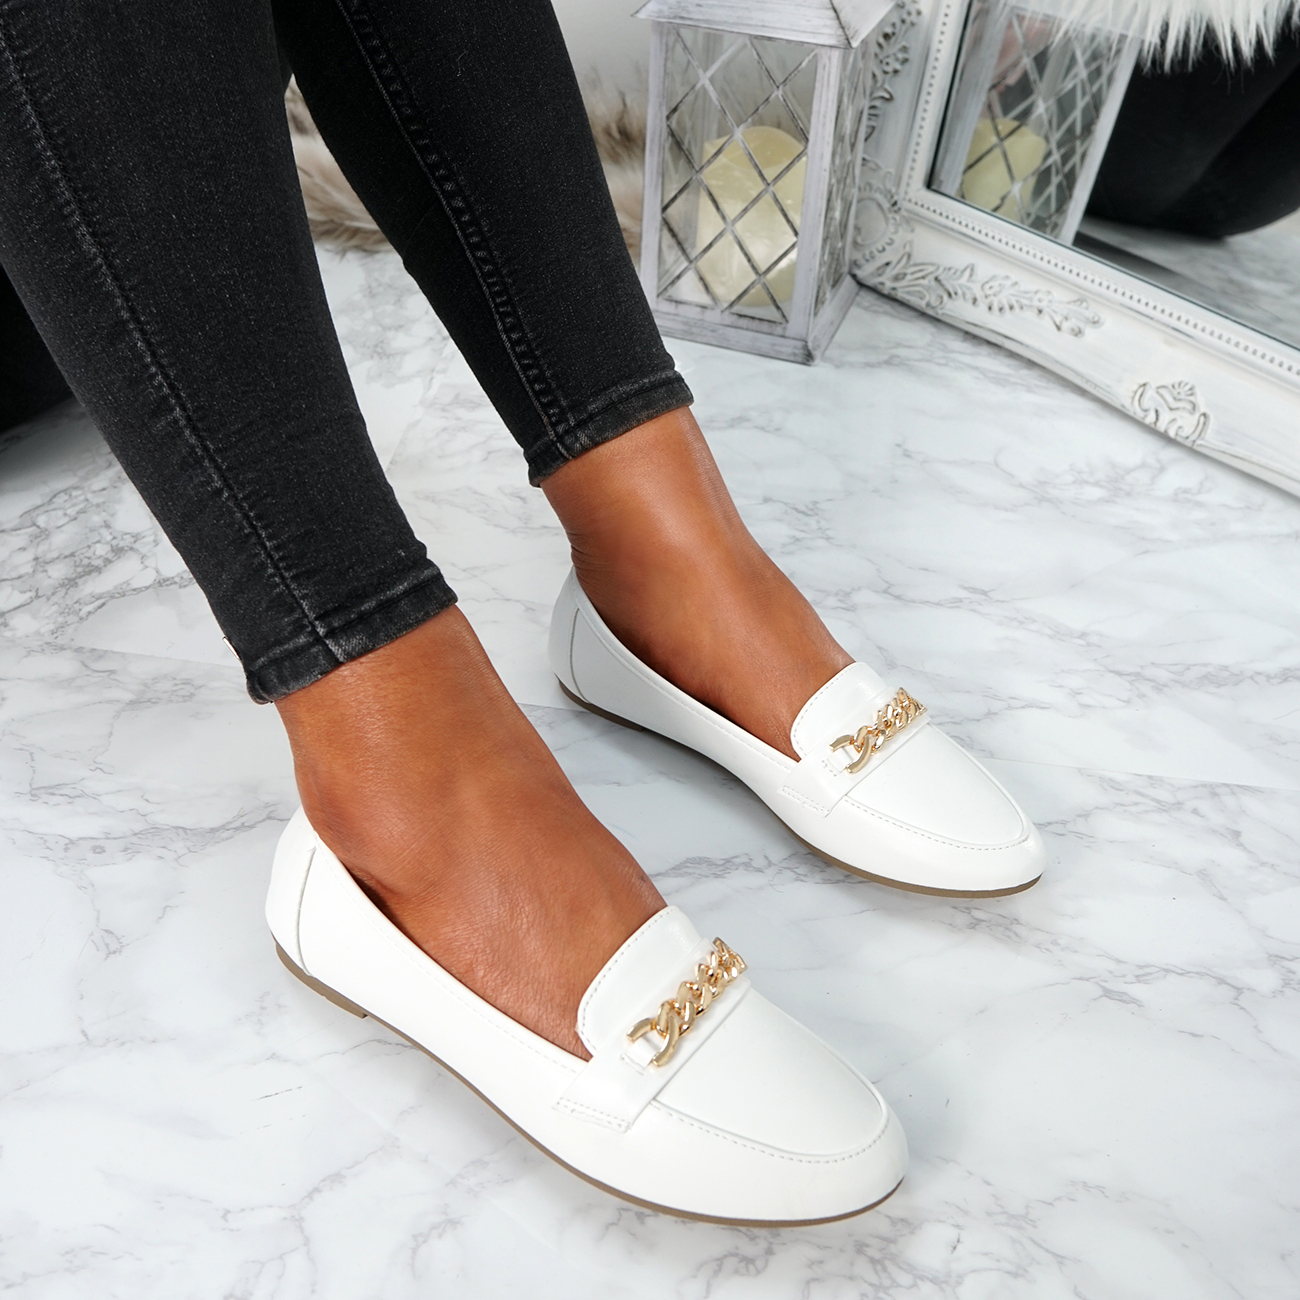 WOMENS-LADIES-CHAIN-SLIP-ON-BALLERINA-LOAFERS-BALLET-DOLLY-PUMPS-SHOES-SIZE thumbnail 43